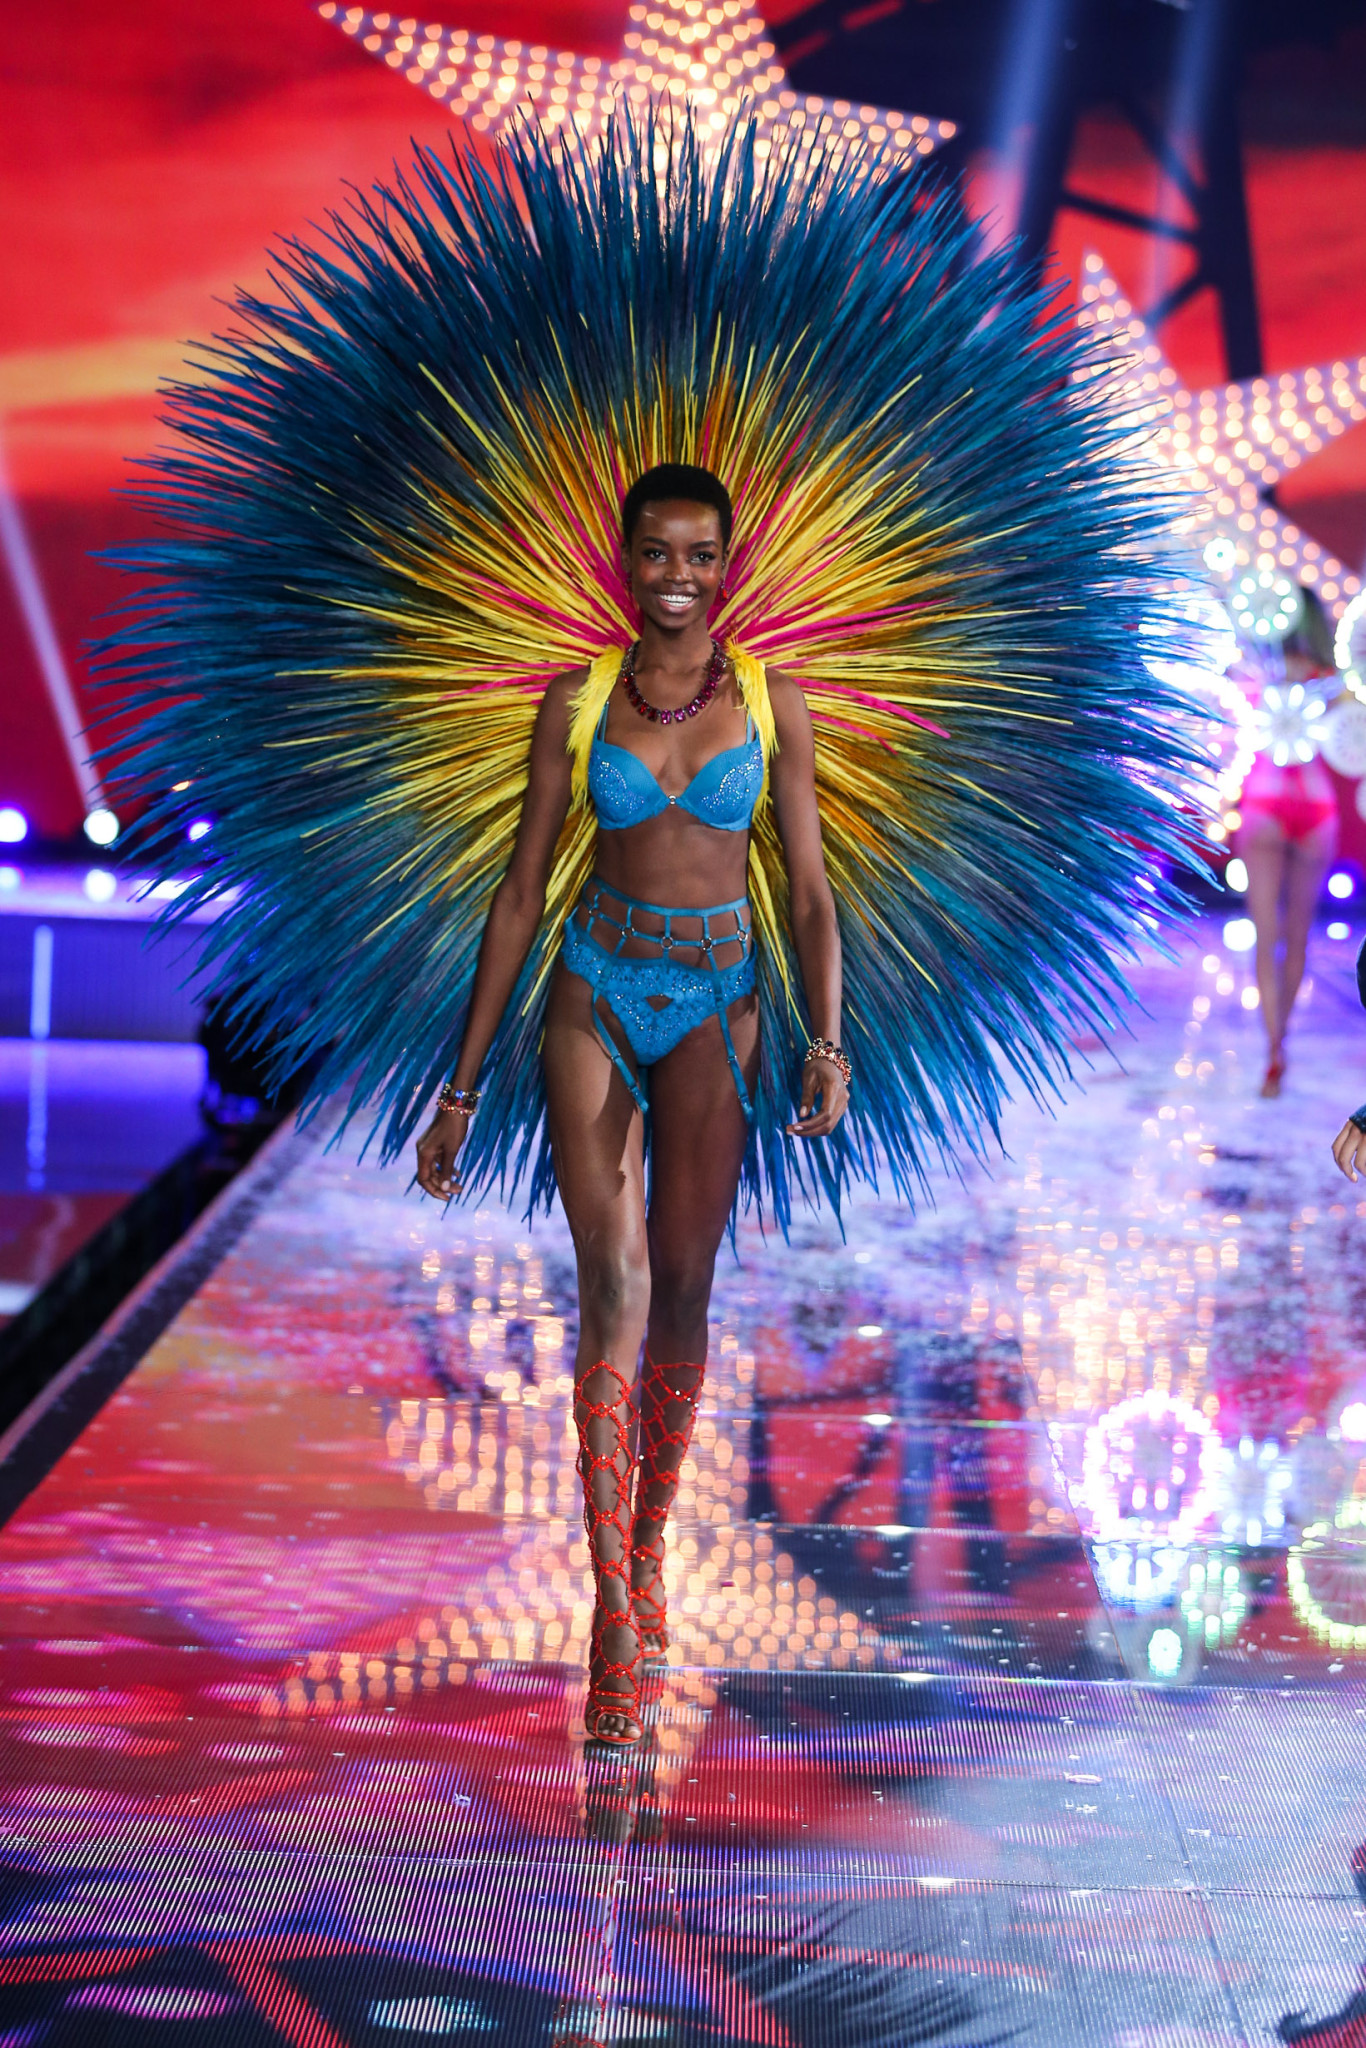 Maria walks the runway at the 2015 Victoria's Secret Fashion Show in New York City on November 10th, 2015